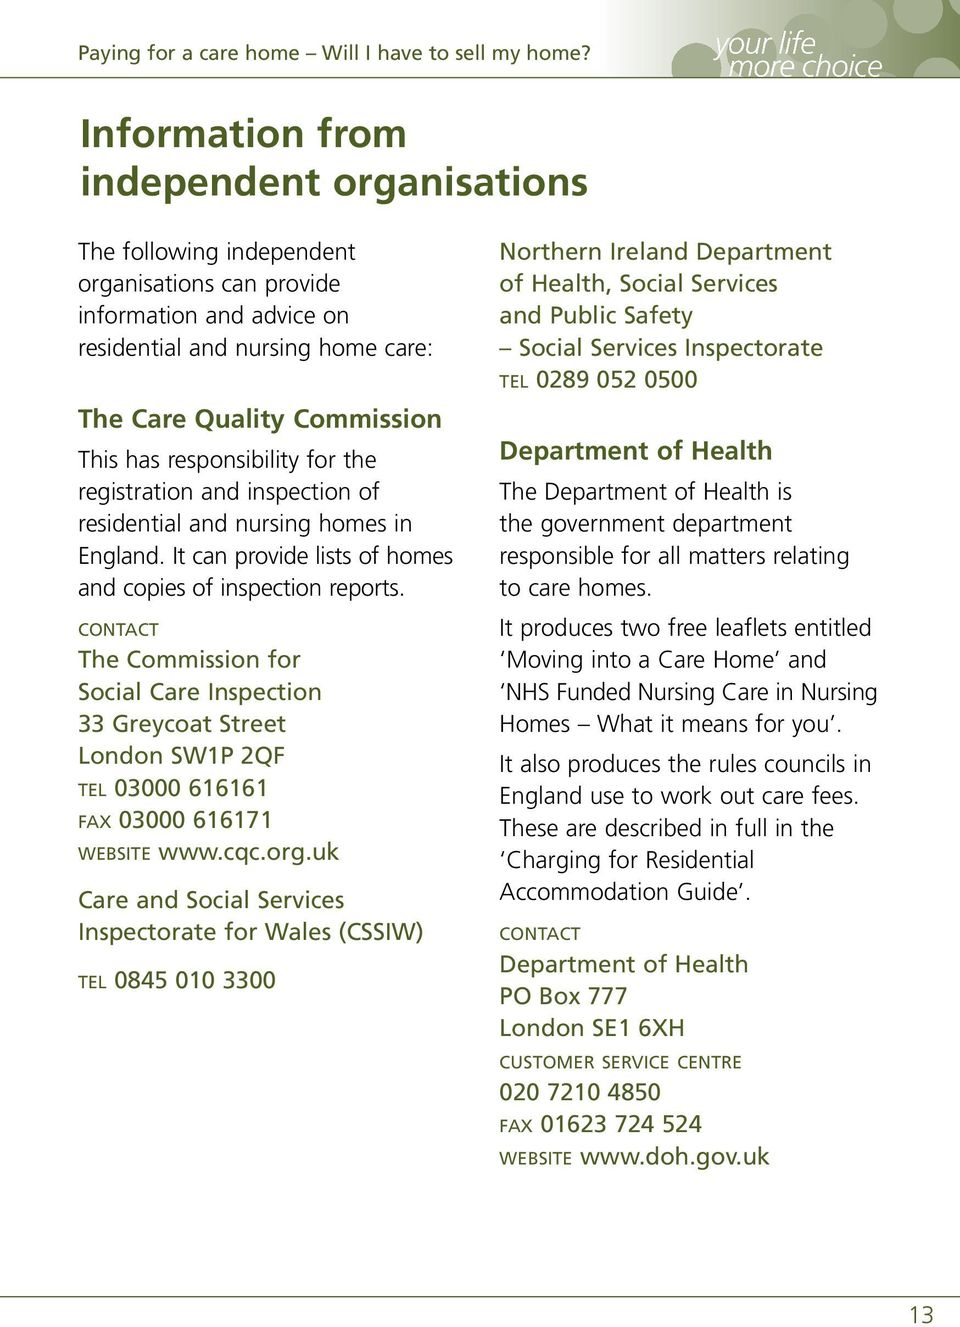 The Commission for Social Care Inspection 33 Greycoat Street London SW1P 2QF TEL 03000 616161 FAX 03000 616171 WEBSITE www.cqc.org.